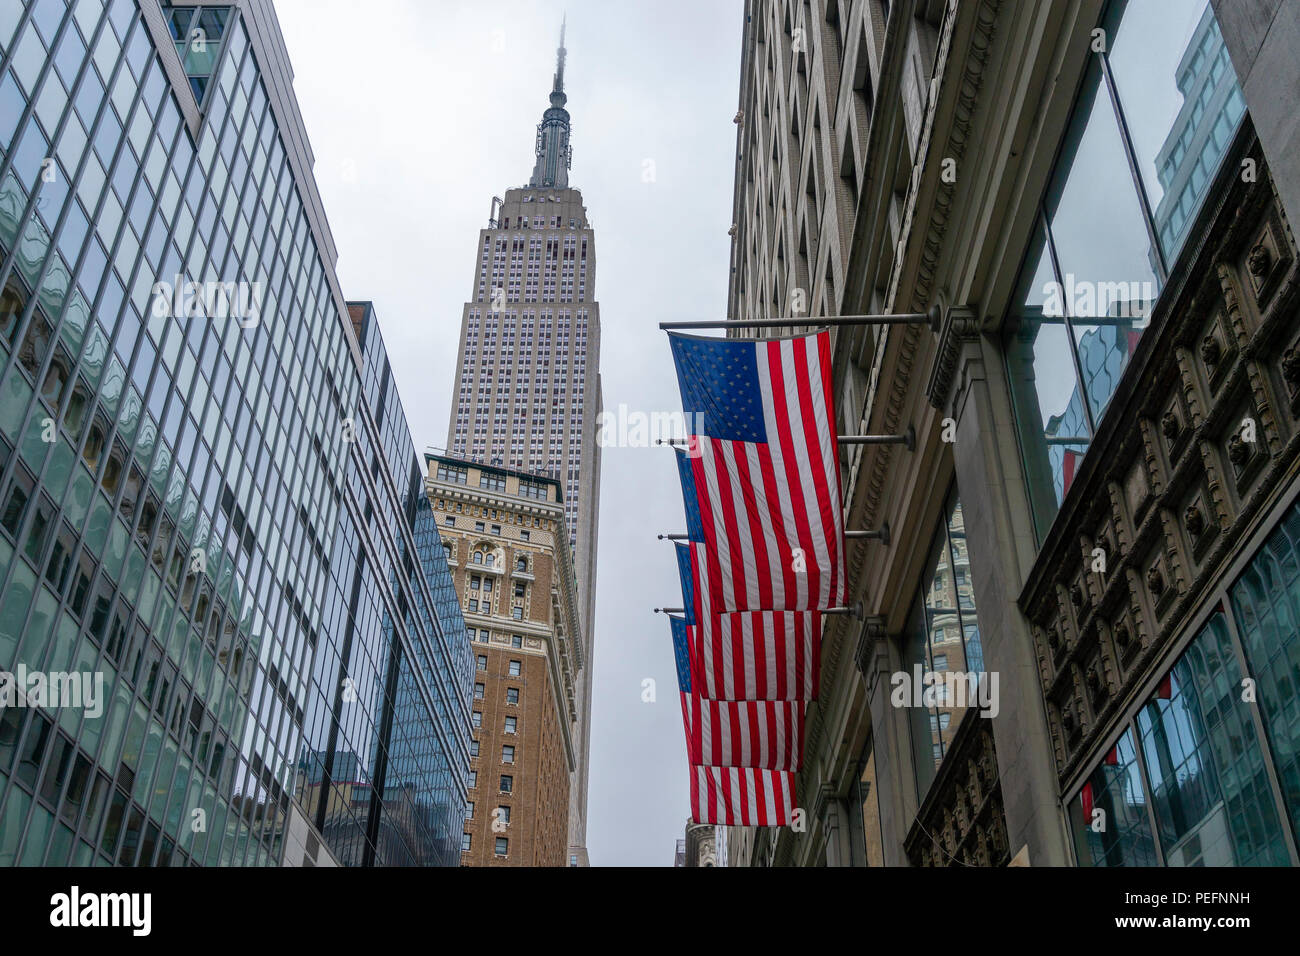 Empire State Building and American flags in New York City Stock Photo